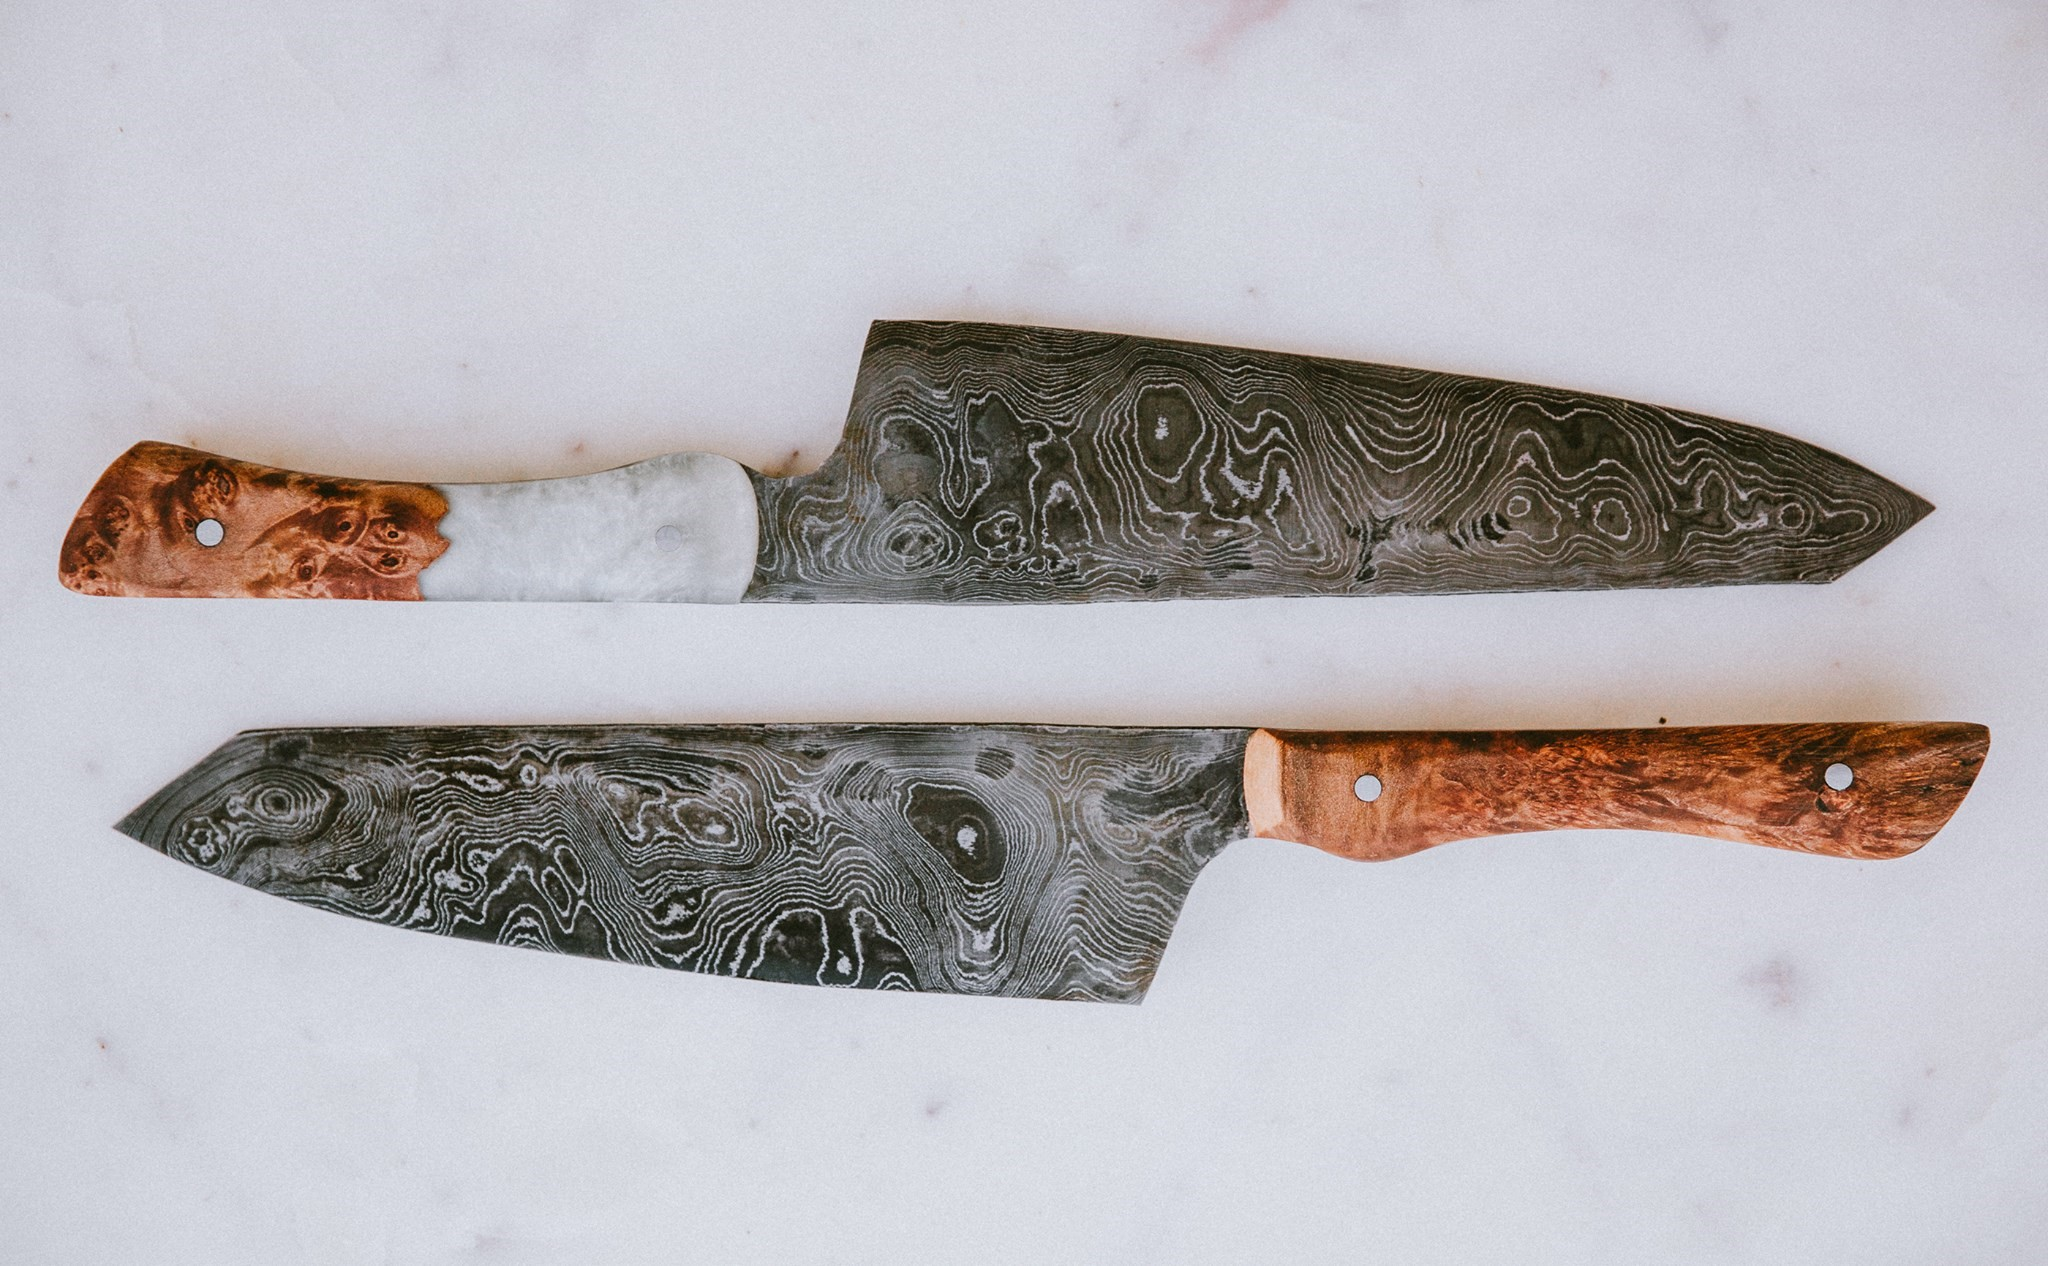 10% OFF IN-STOCK PRODUCTS OR 15% OFF CUSTOM ORDERS OVER $200   Iron & Earth Works is a local blacksmith, knifesmith, and carpenter that makes amazing creations. Get 10% off all in-stock products when you mention New in Lynchburg, or 15% off a custom order over $200.